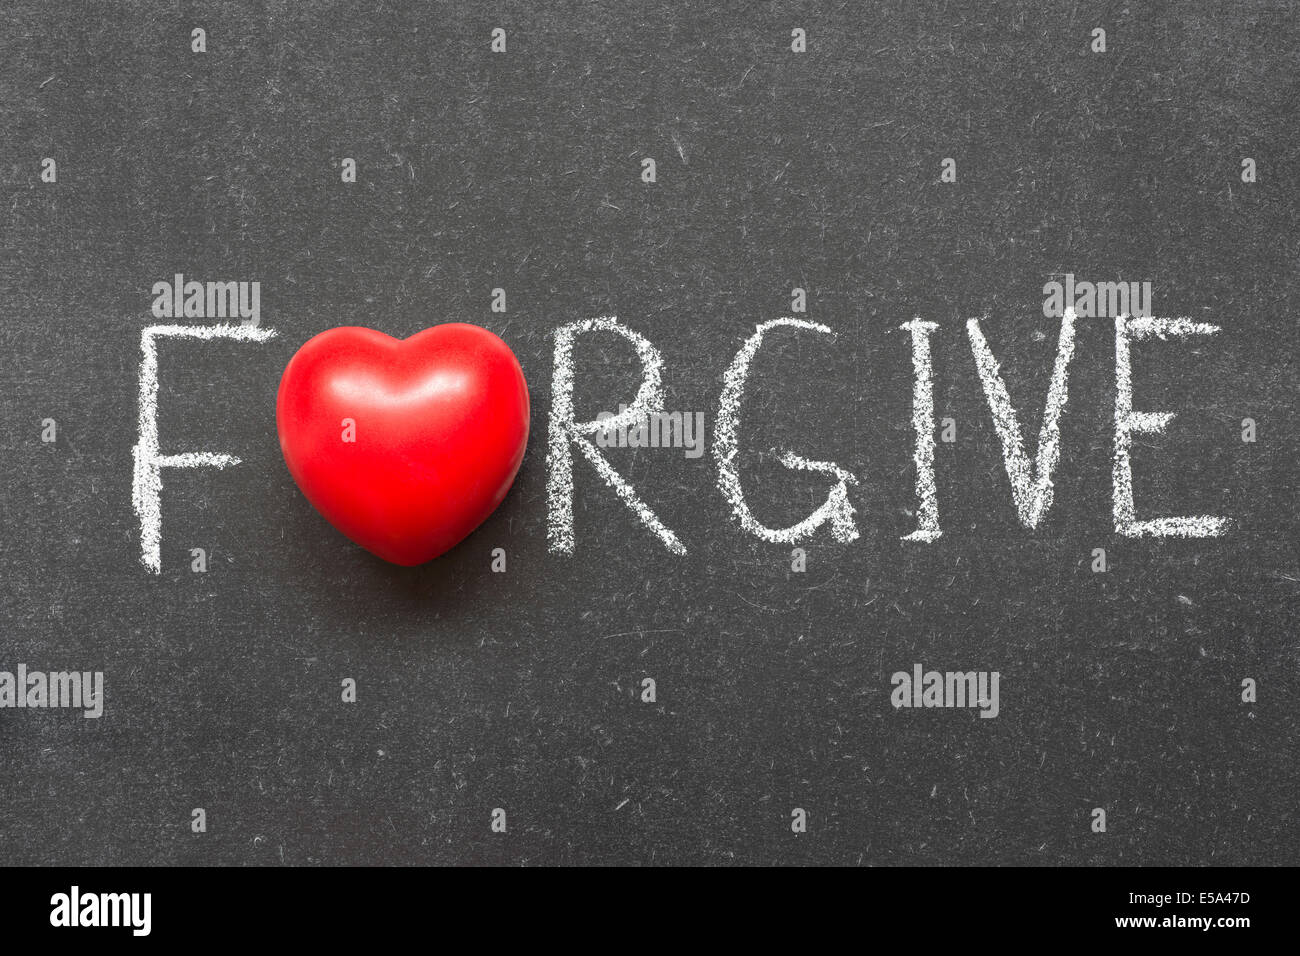 forgive word handwritten on chalkboard with heart symbol instead of O - Stock Image